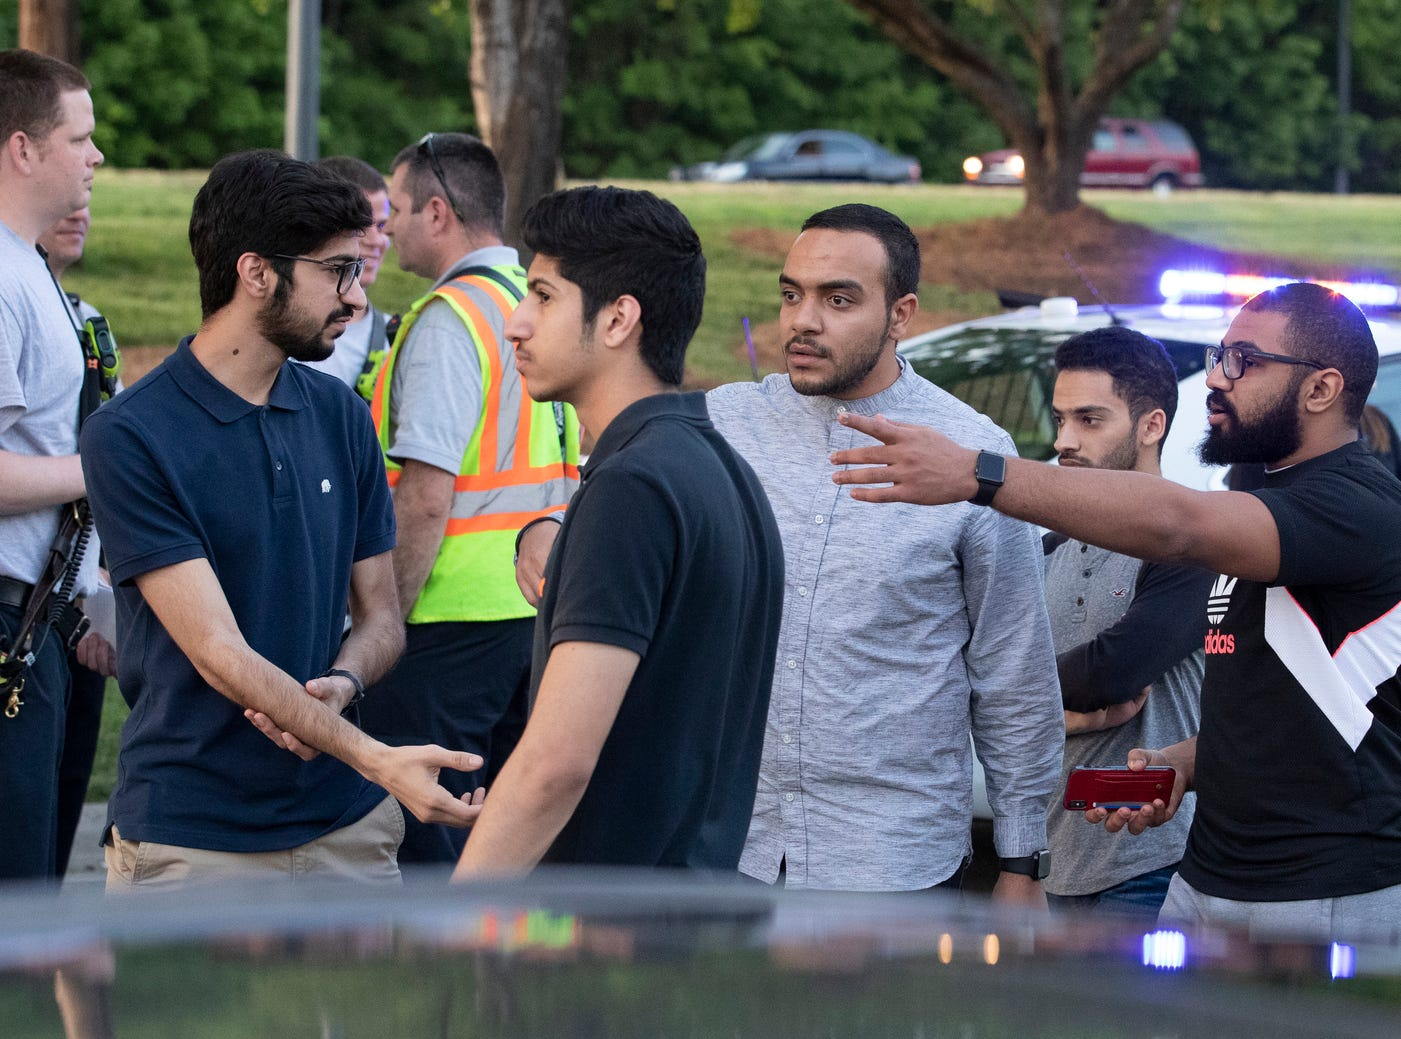 People gather across from the campus of University of North Carolina at Charlotte after a shooting at the school Tuesday, April 30, 2019, in Charlotte, N.C. The school shooting left at least a few people dead and several wounded Tuesday, prompting a lockdown and chaotic scene in the state's largest city.